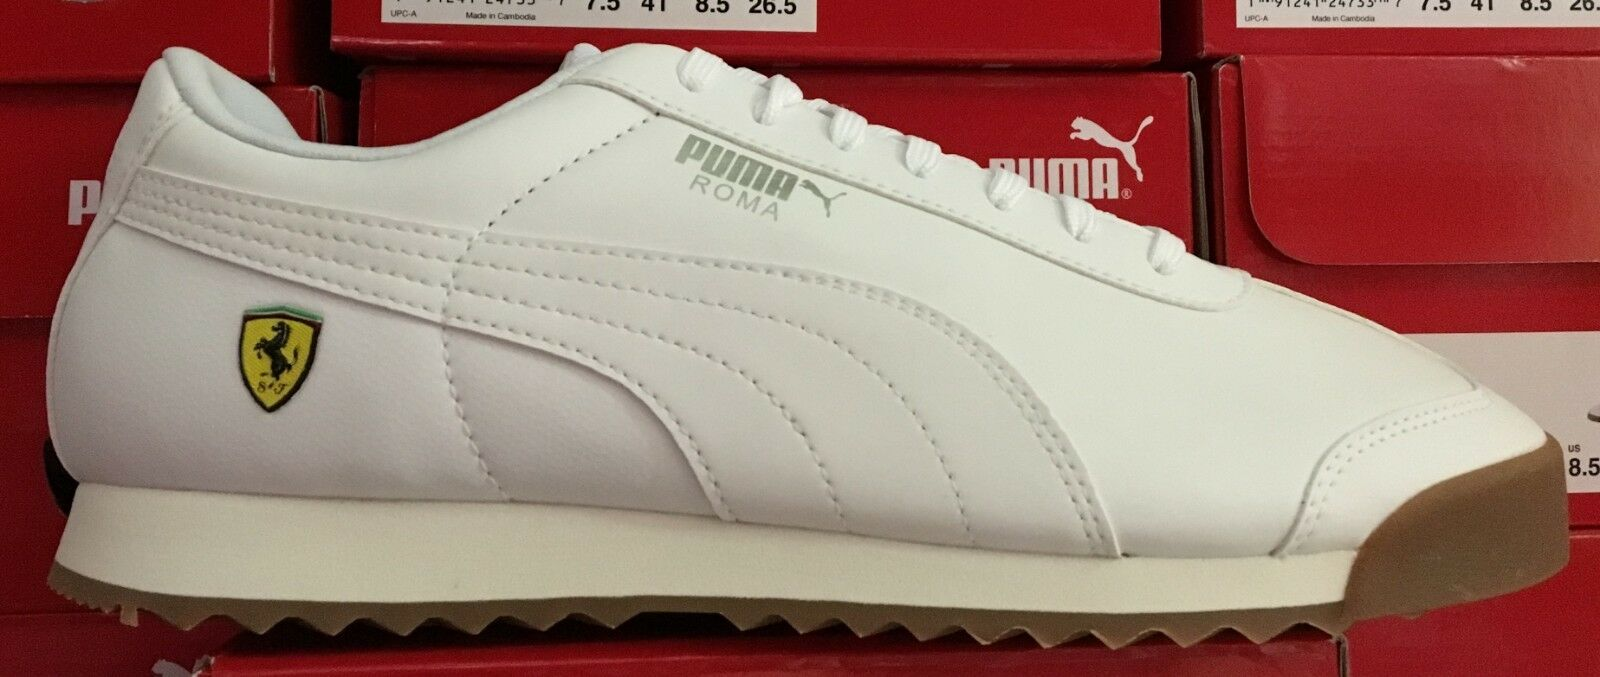 1e6a91f5d PUMA SF Roma Men s Running Casual Sneakers Puma White 306083 06 L ...